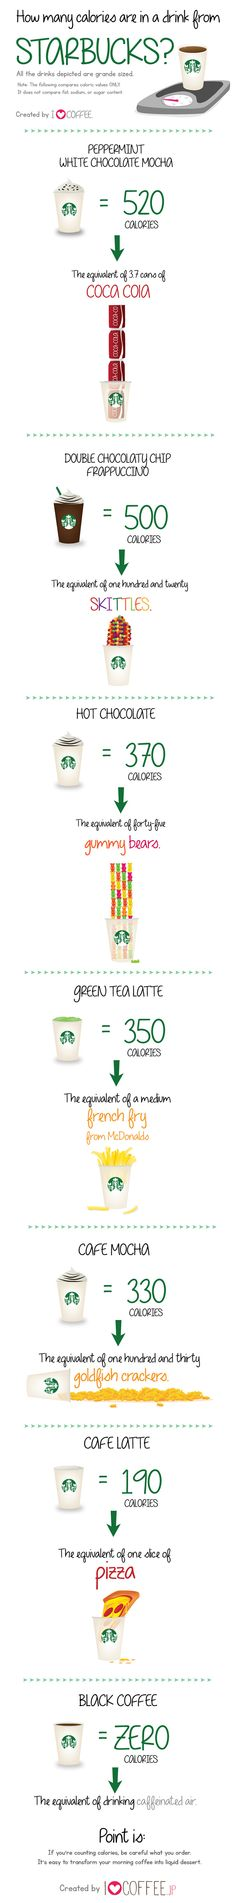 How many calories are in a drink from Starbucks? [Infographic] | HellaWella